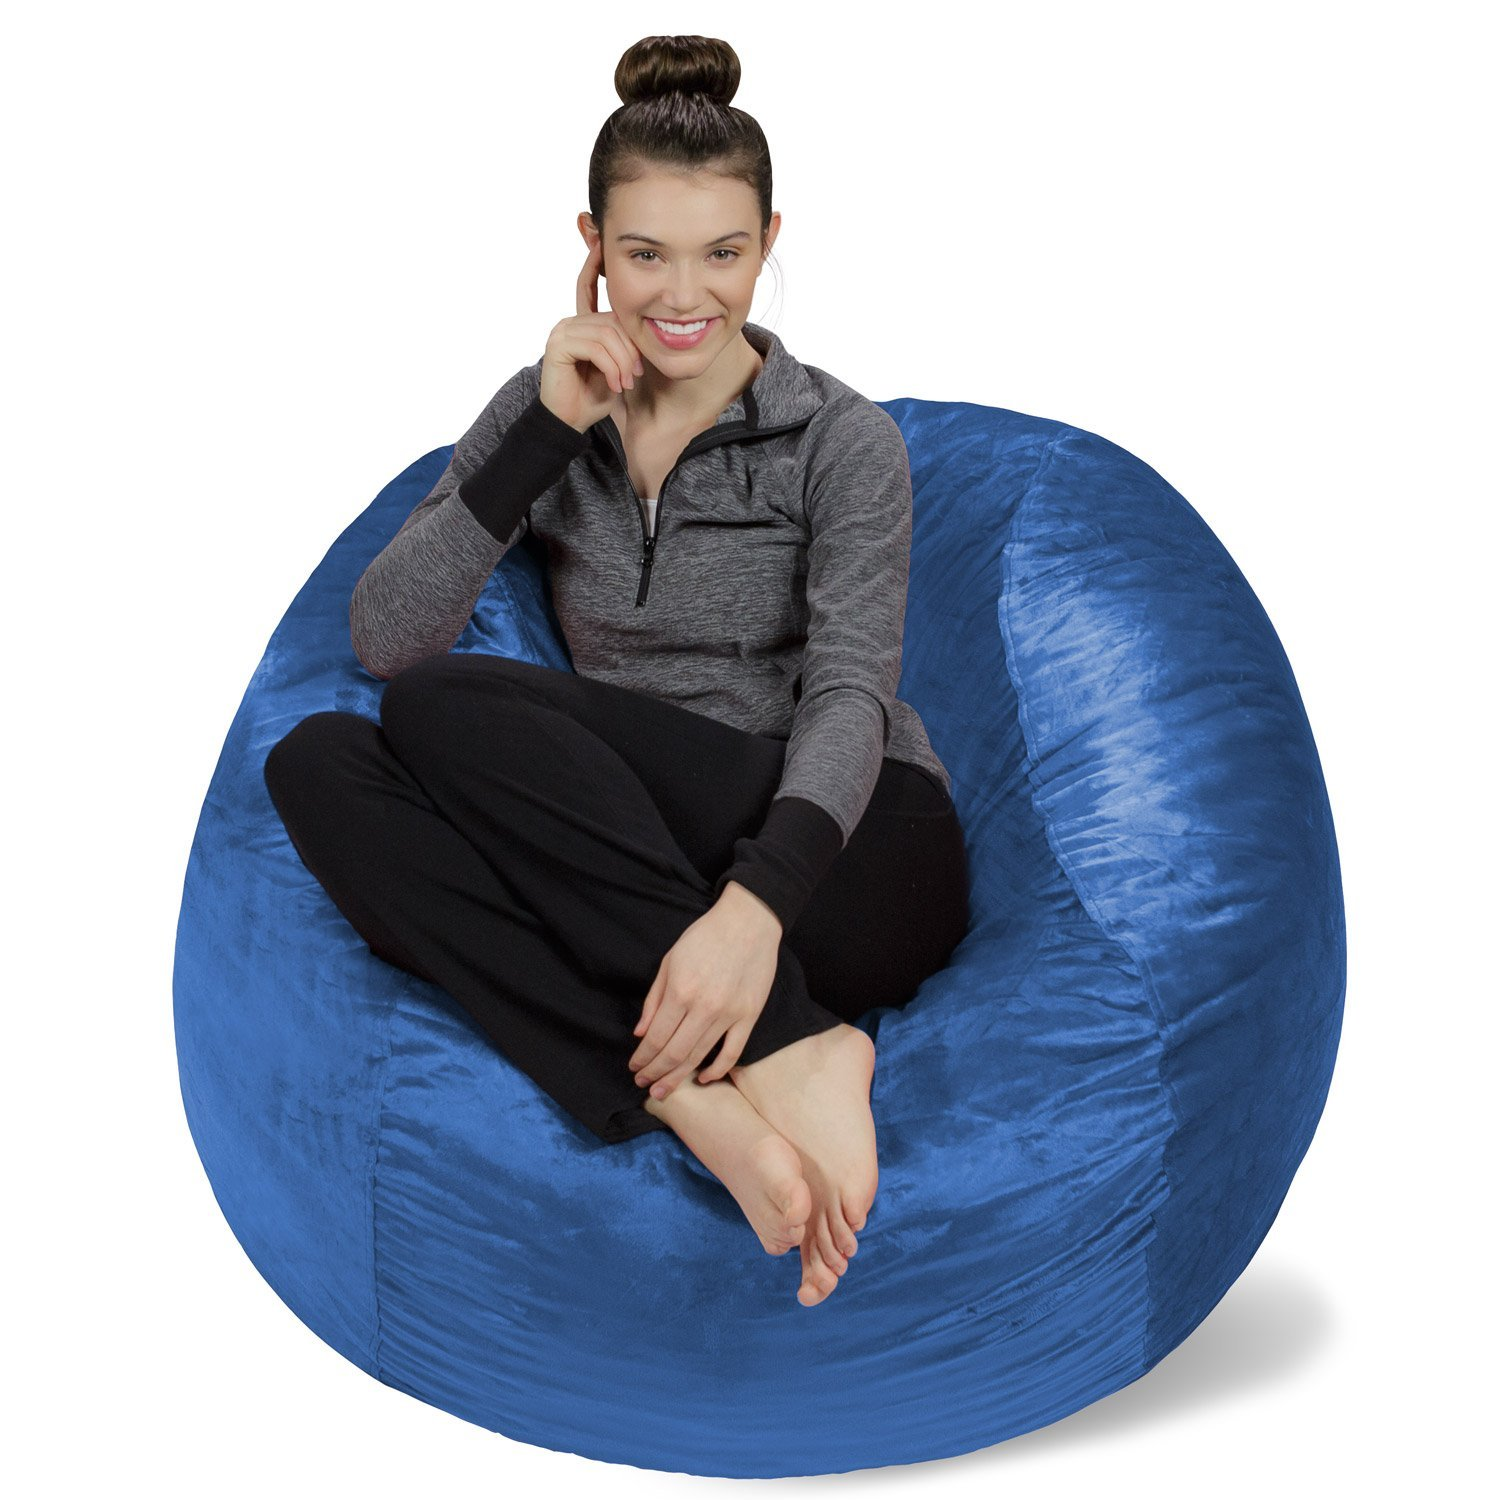 Sofa Sack - Plush, Ultra Soft Bean Bag Chair - Memory Foam Bean Bag Chair with Microsuede Cover - Stuffed Foam Filled Furniture and Accessories For Dorm Room - Royal Blue 4'